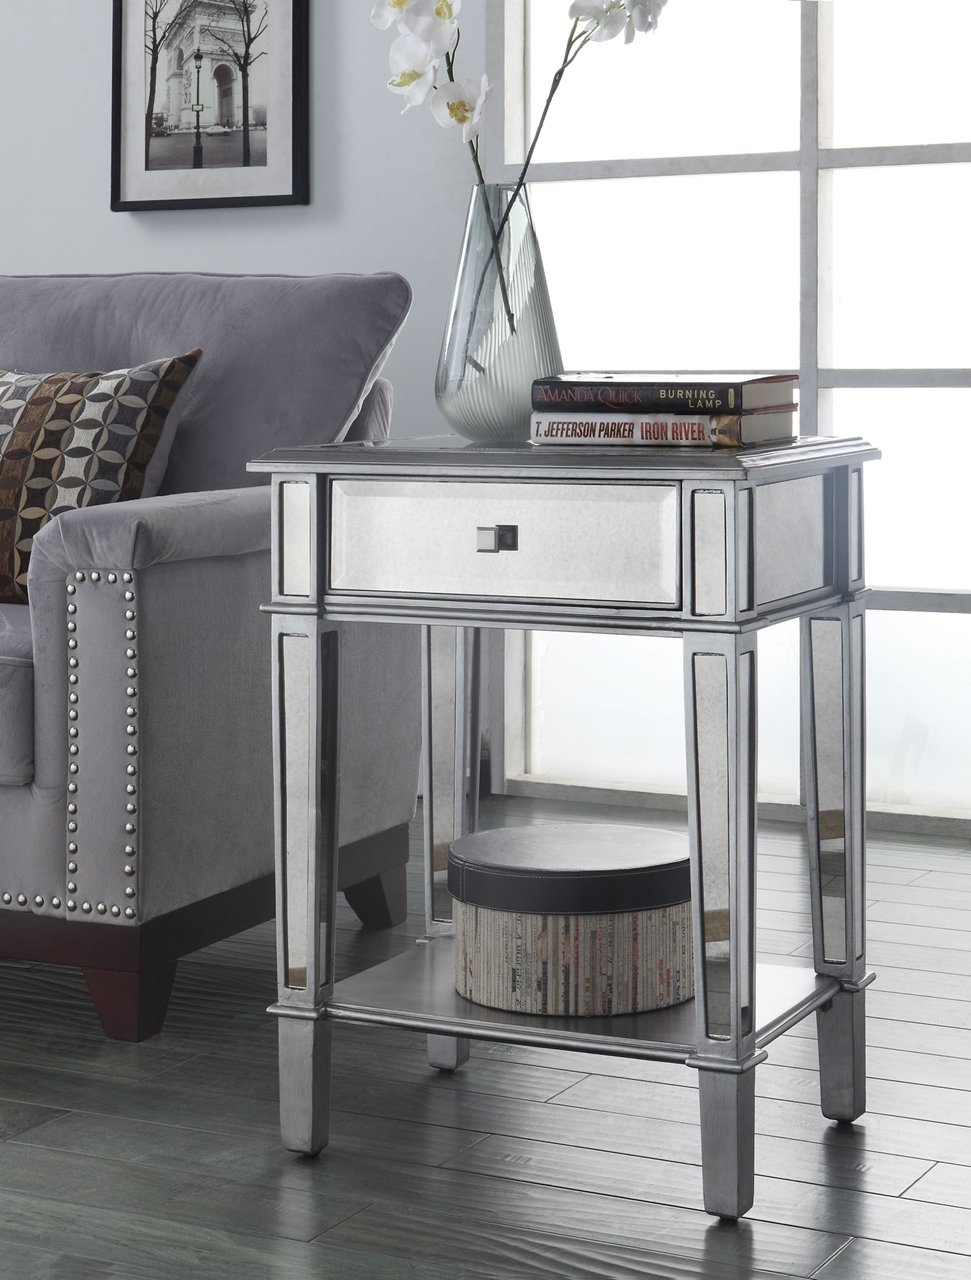 target side table with drawer studio storage sofa stylianosbooks just arrived mirrored living room furniture stand ideas black accent full size teak dining chairs modern edmonton